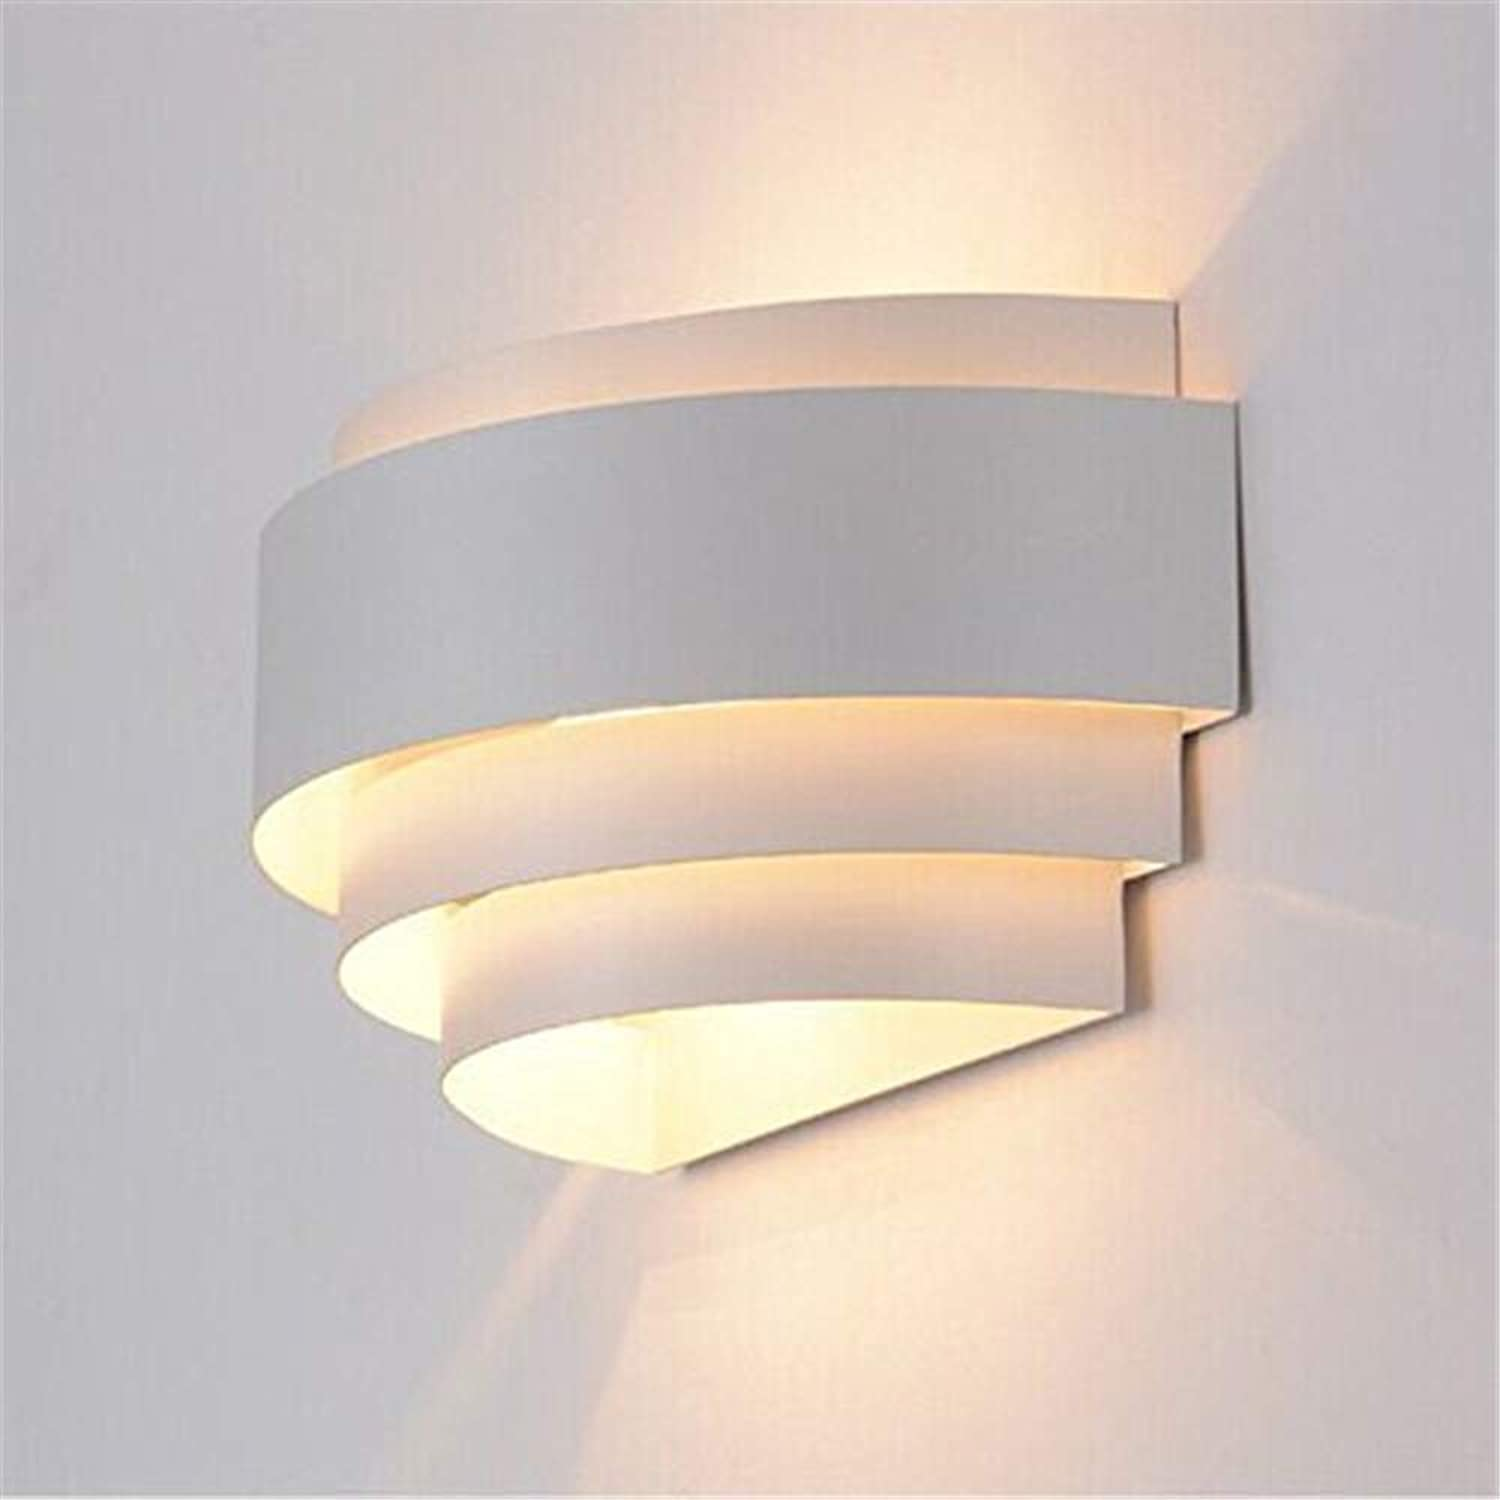 BESTHOO Moderne LED-Wandleuchten nach Oben und unten in der Innenwand Lampe E27 Lampenhalter 220V geeignet für Living Room Bedroom Corridor Bad Lampe Warm Weiß (Excluding Light Bulb)